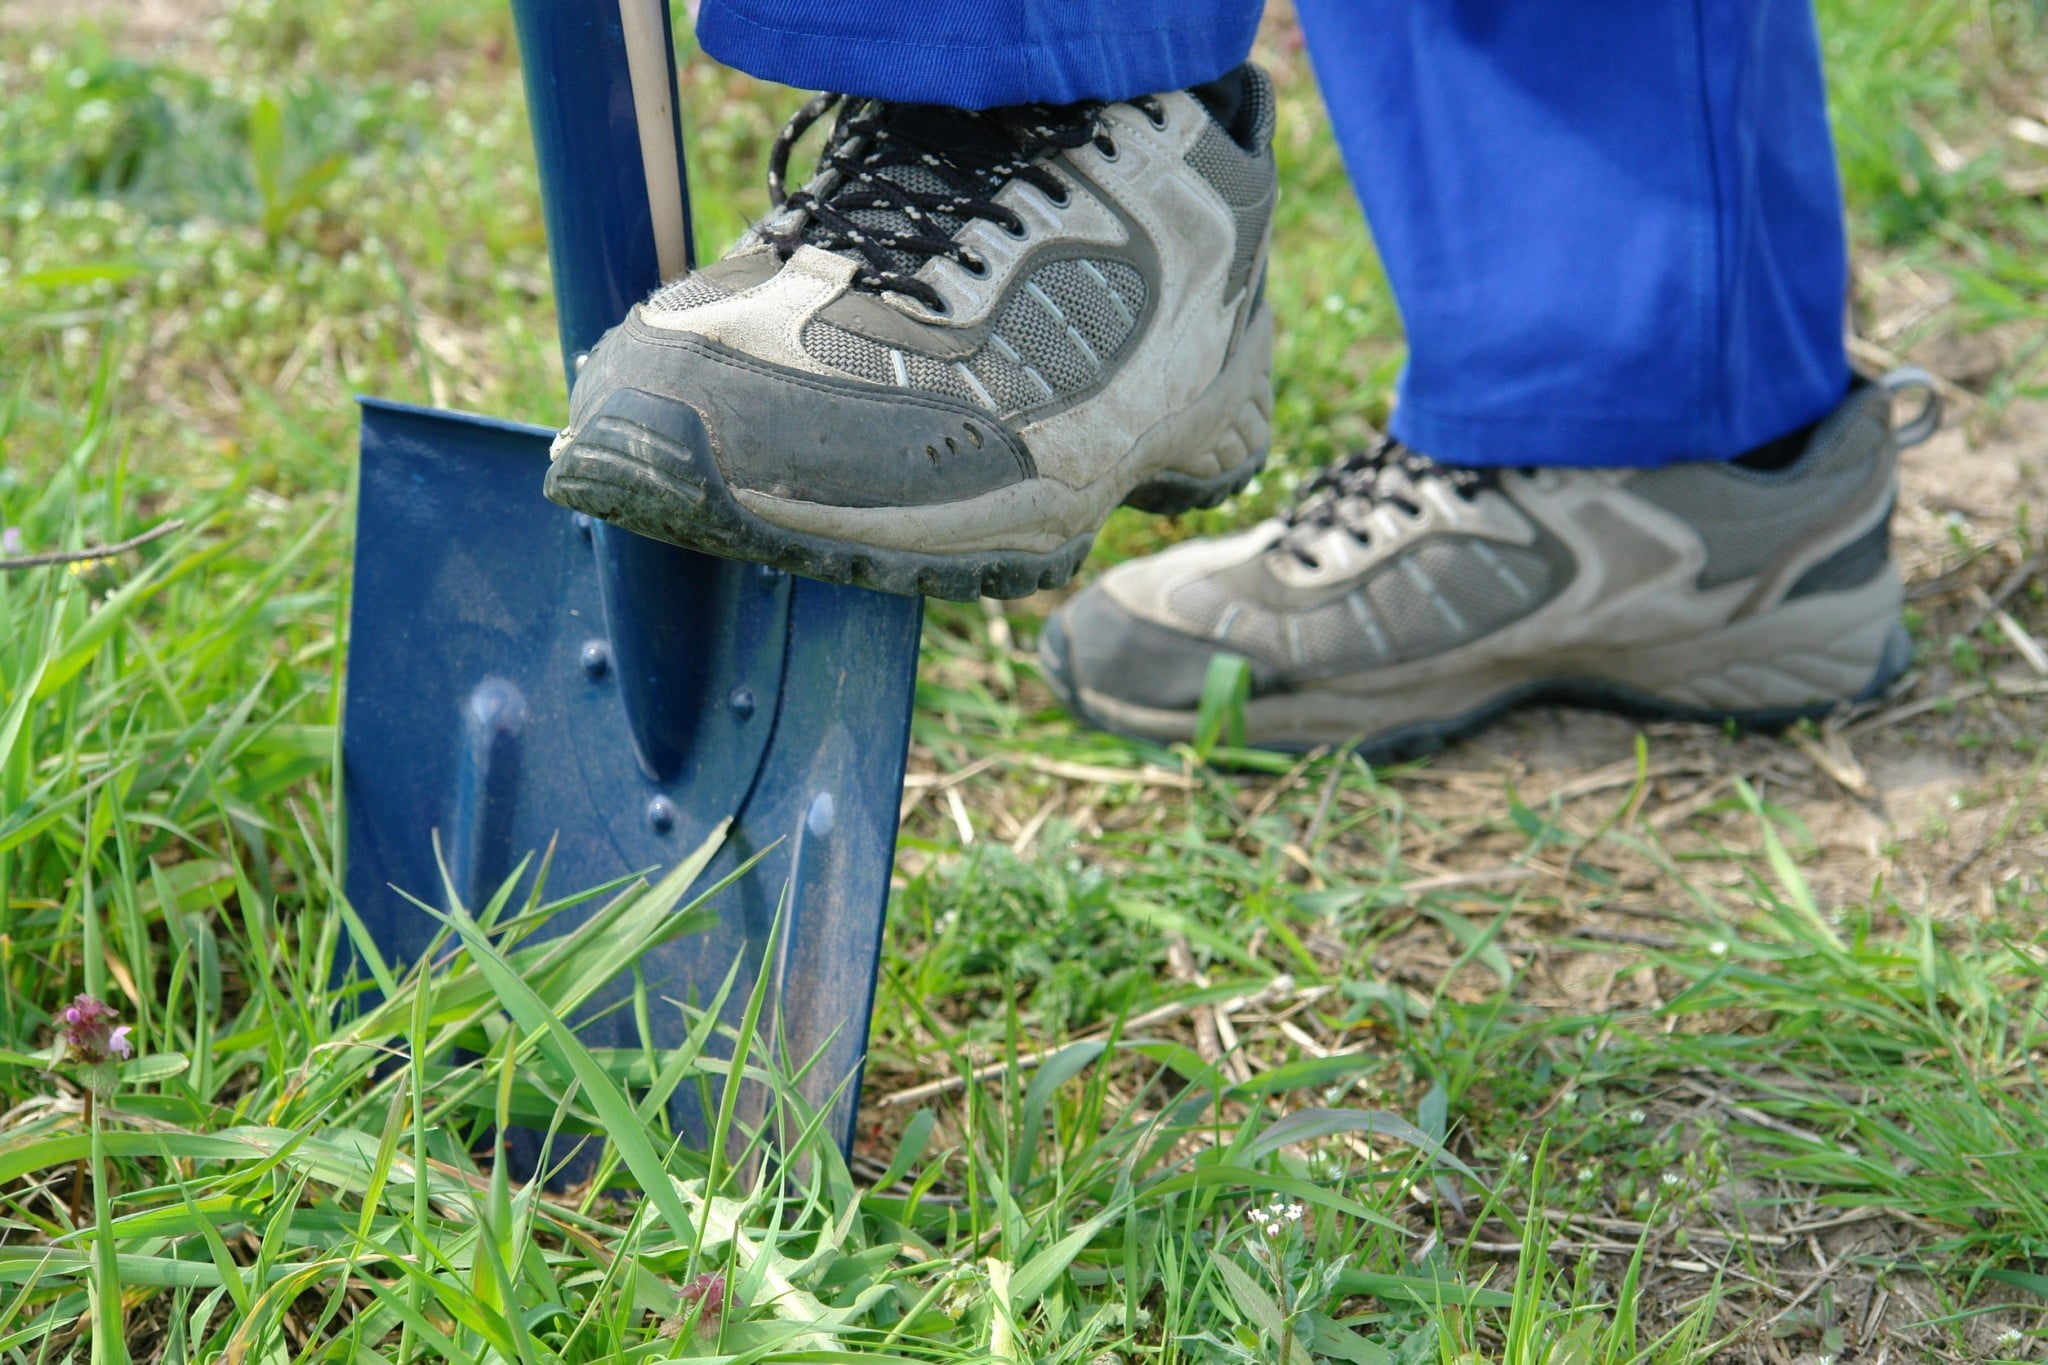 construction worker digs spade into ground